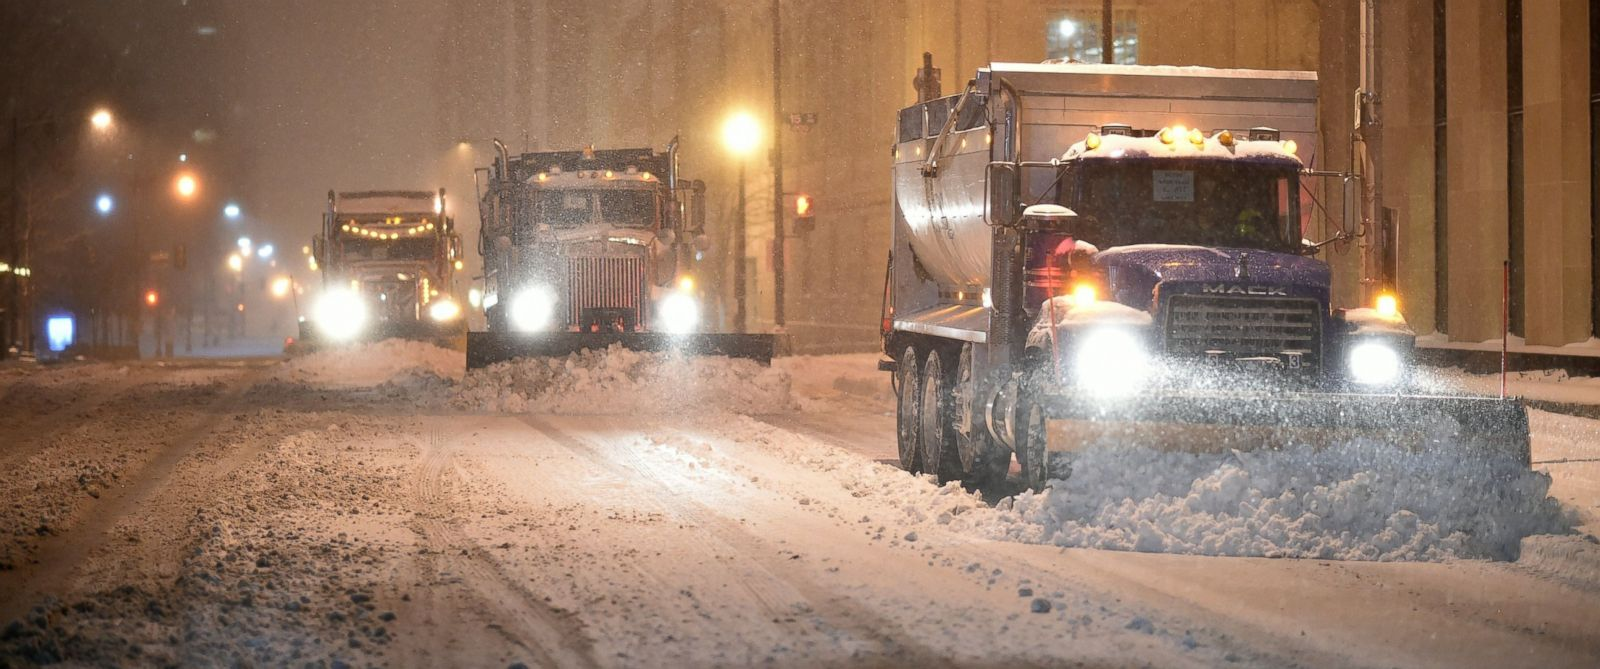 PHOTO: Snow plows clean the snow from a street during a snowstorm in downtown Washington, DC on January 22, 2016.